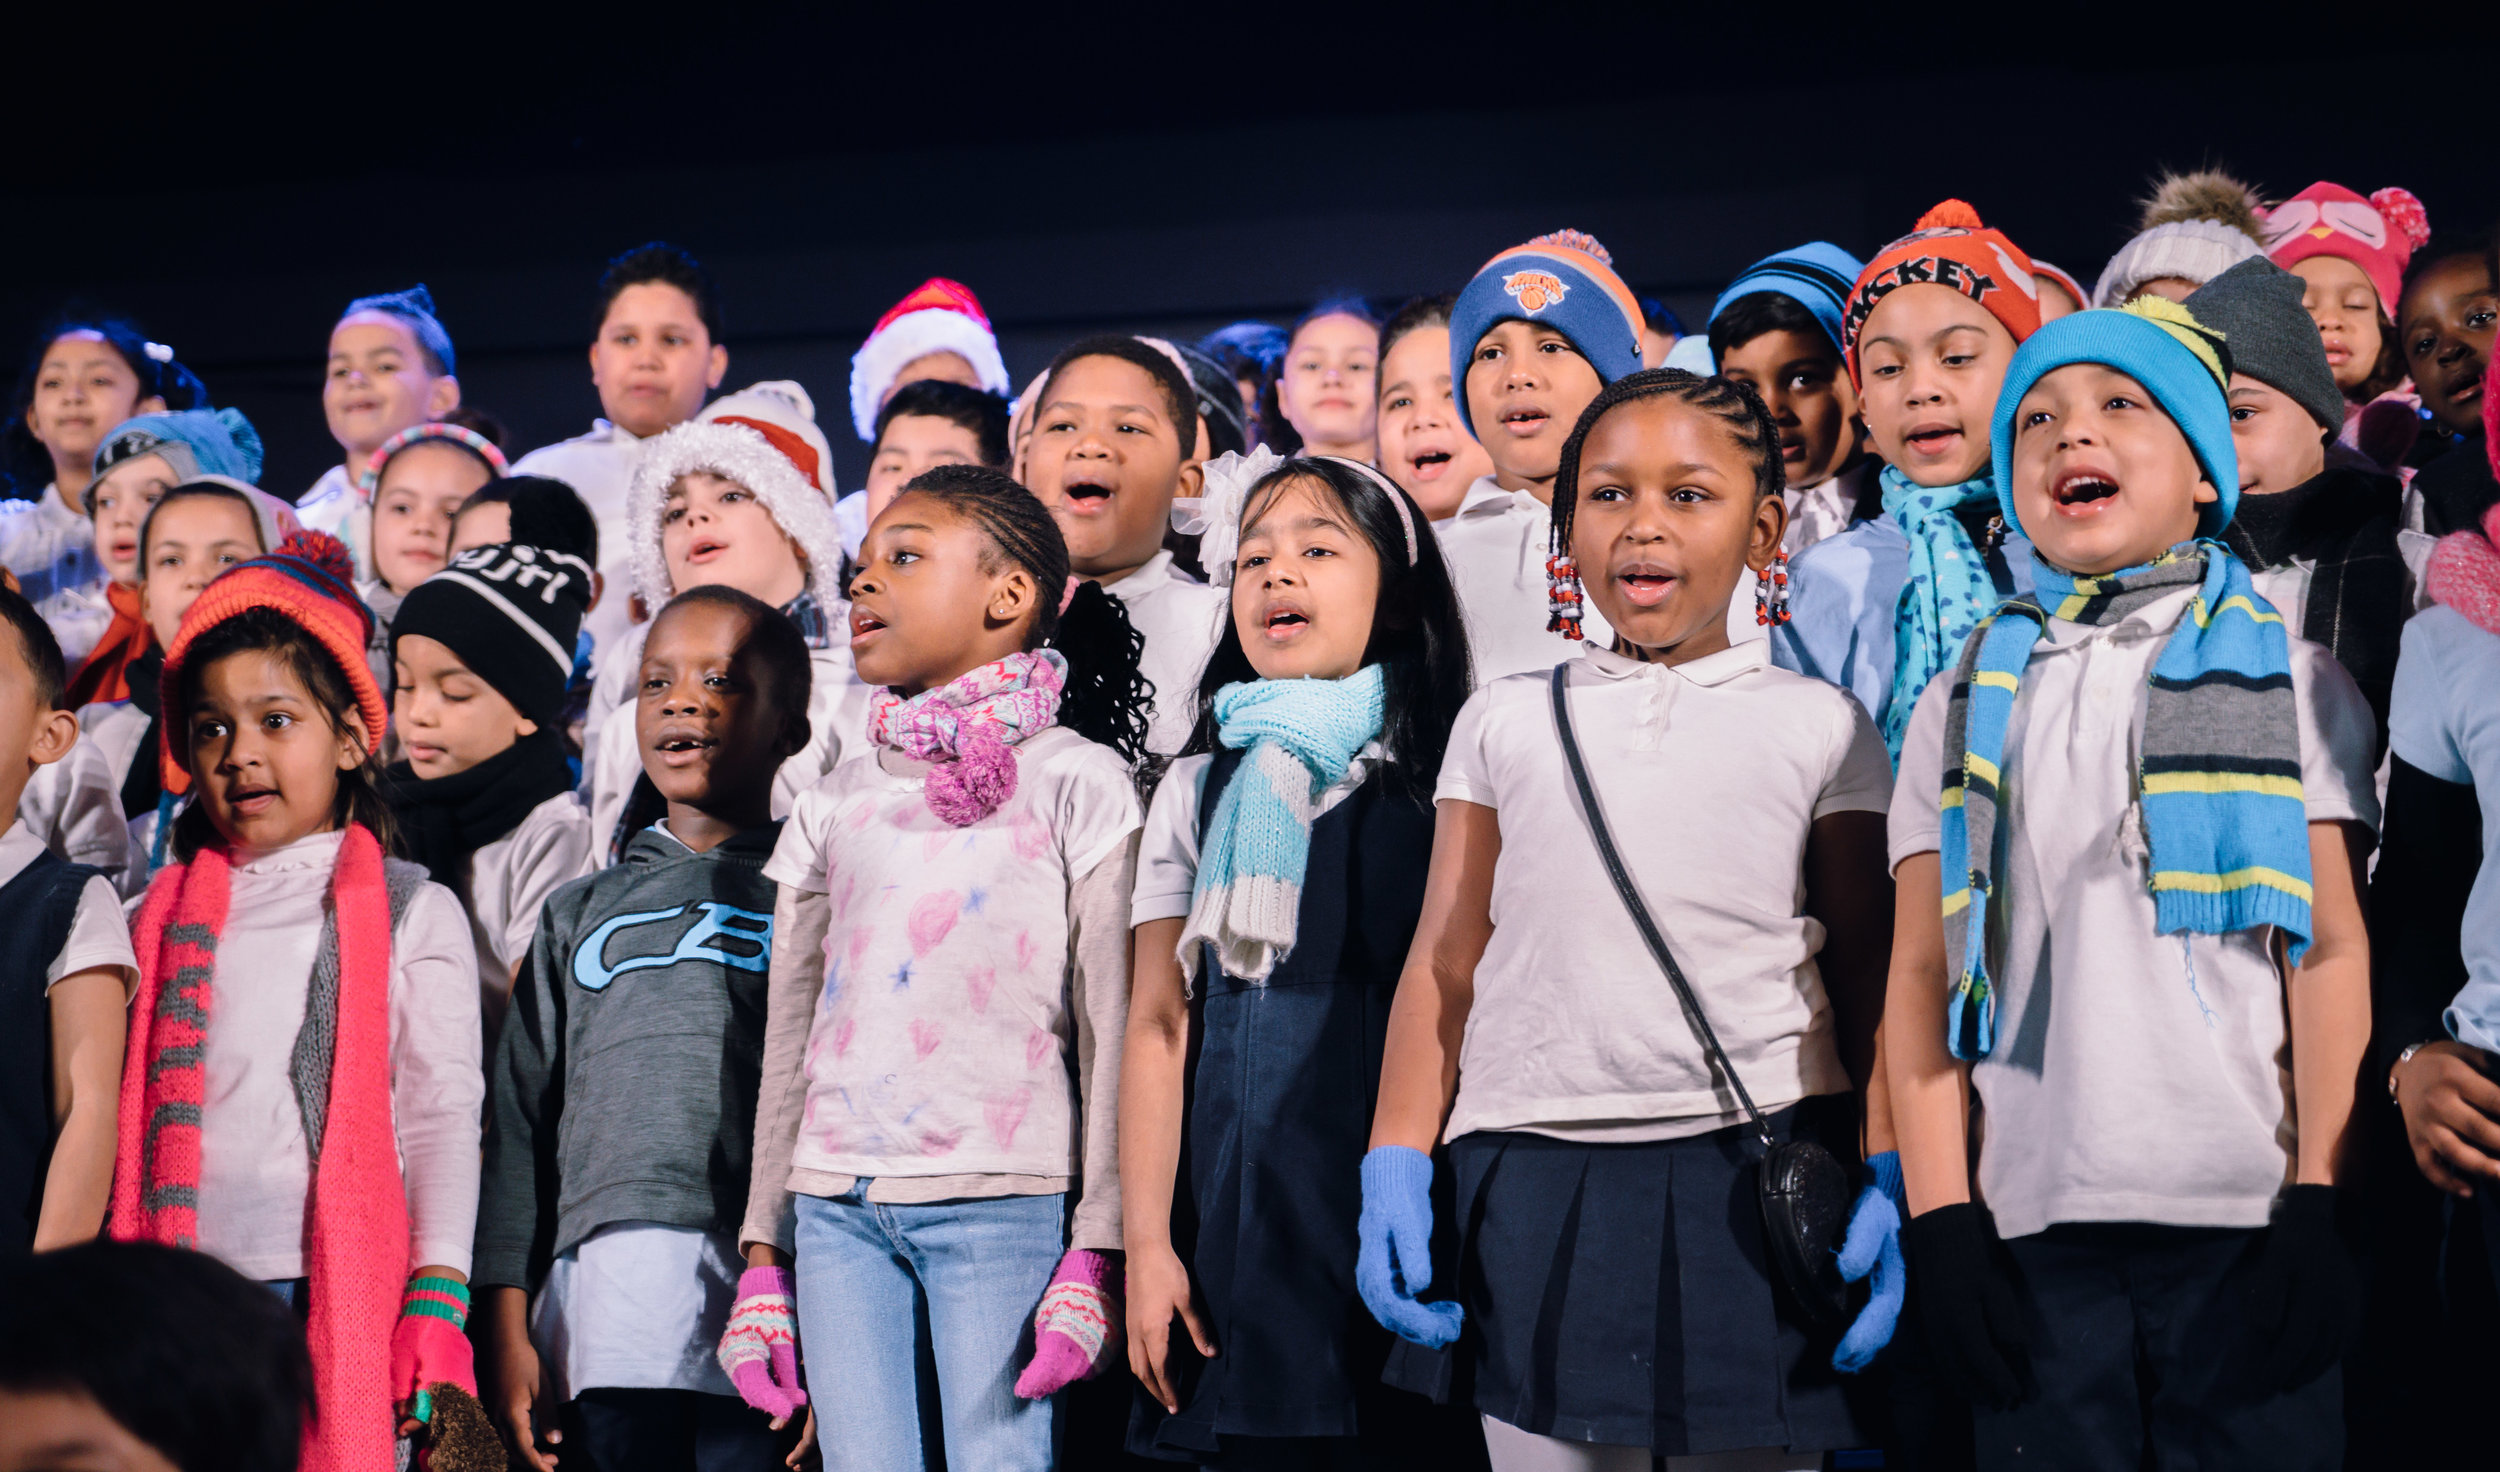 Students in Kindergarten, first grade, and second grade put on awe-inspiring performances.